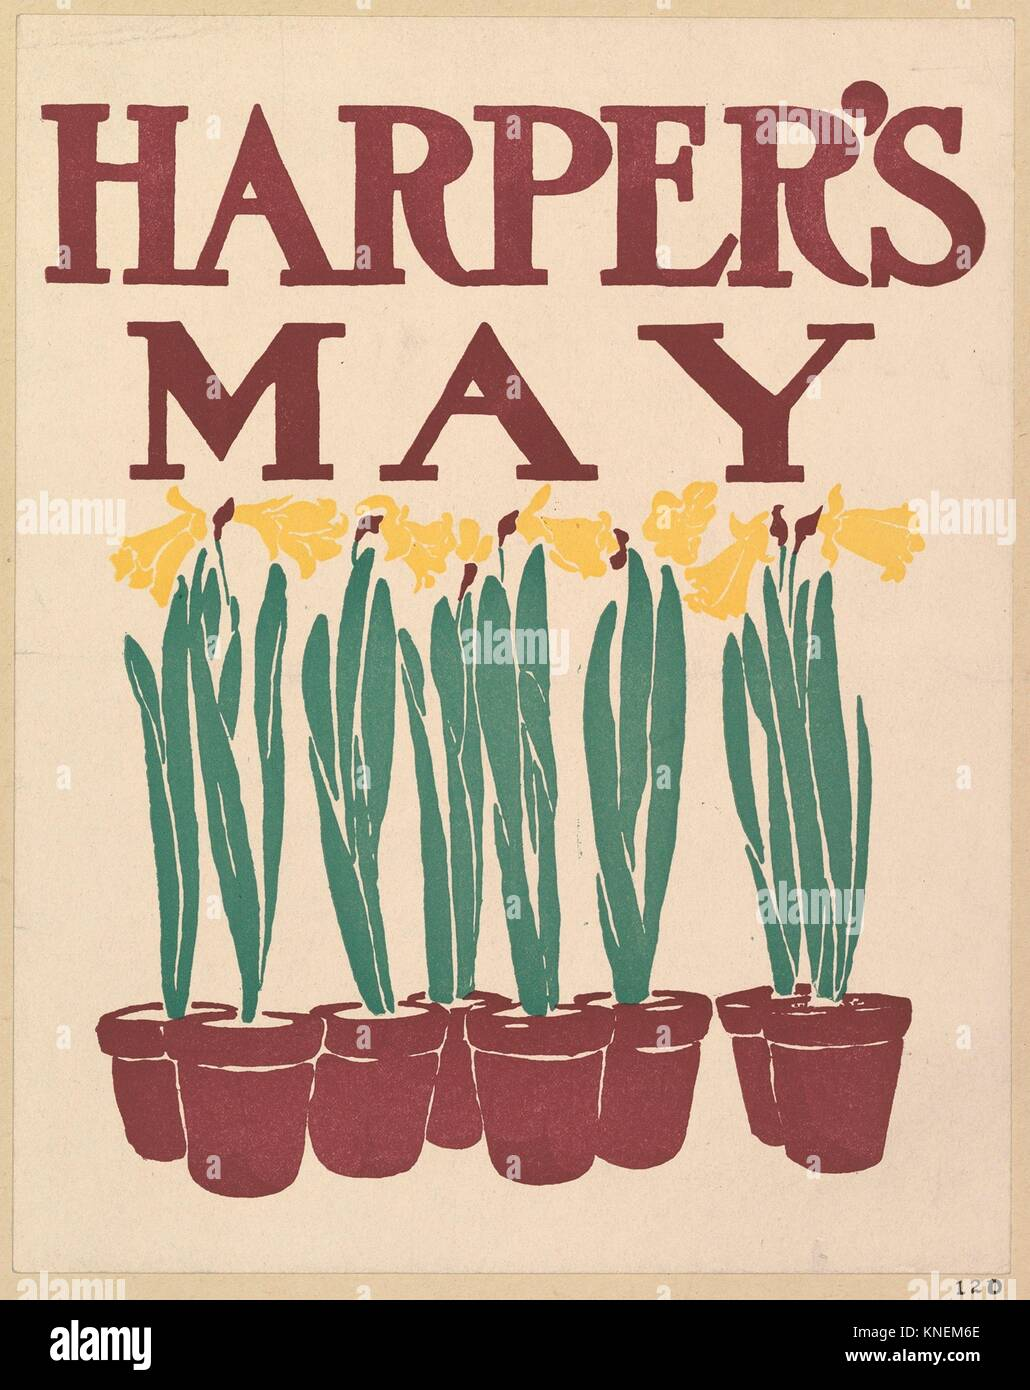 Harper's: May. Artist: Edward Penfield (American, Brooklyn, New York 1866-1925 Beacon, New York); Publisher: - Stock Image